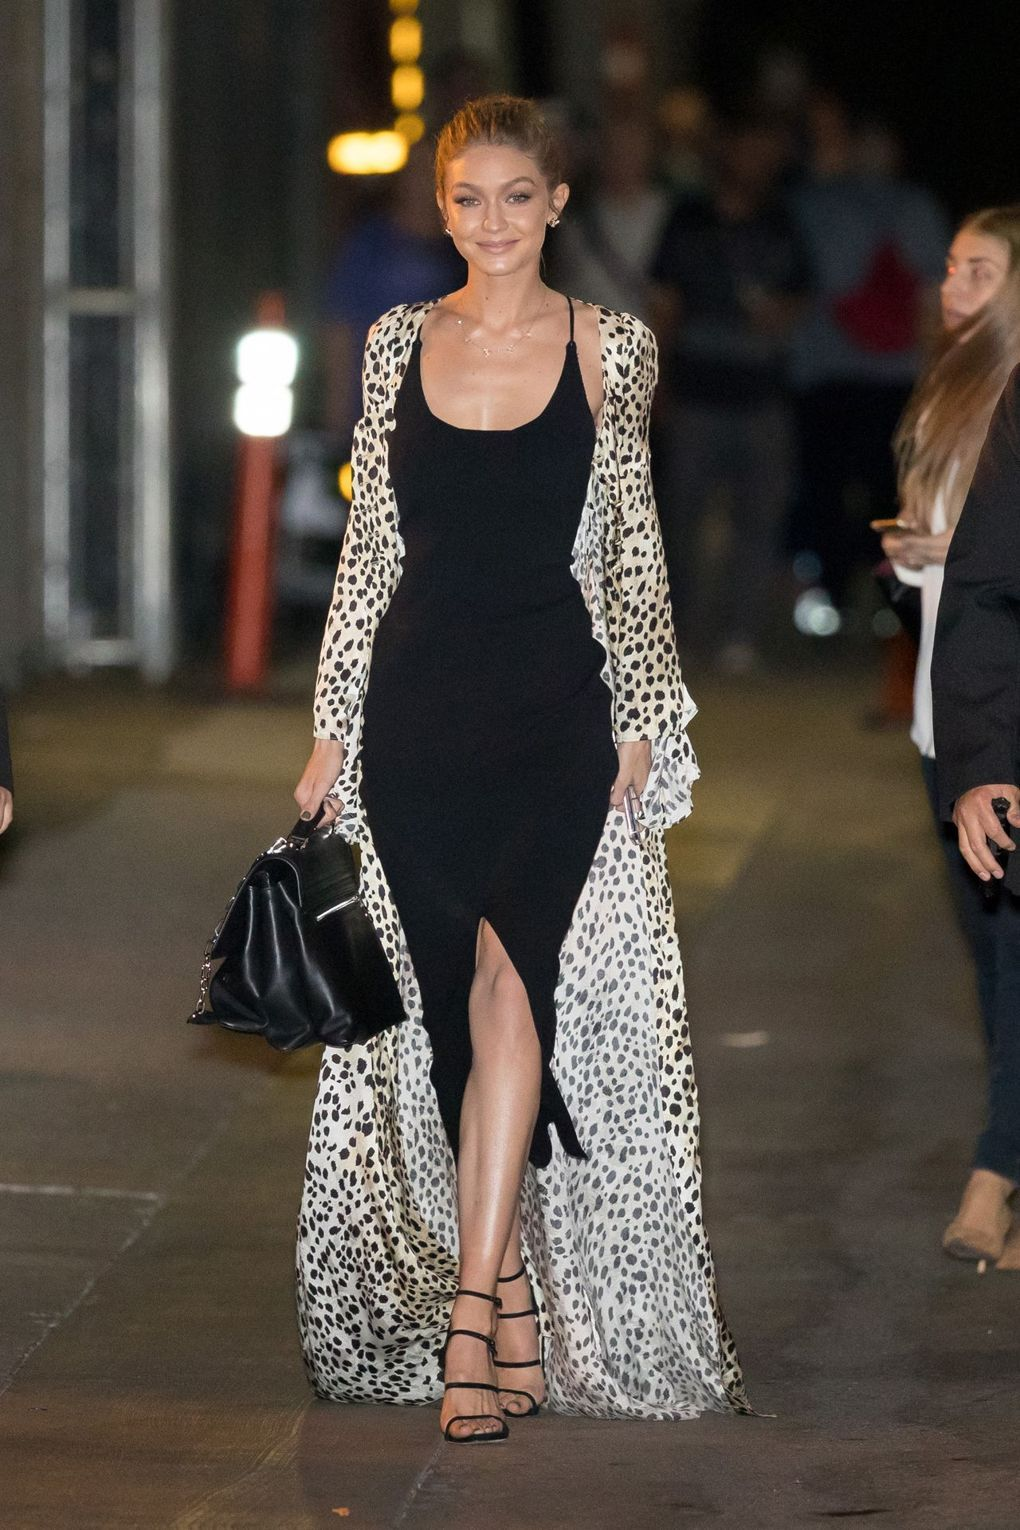 Roberto Cavalli Semi Transparentes Abendkleid Mit Floraler Sp Gigi Hadid In Roberto Cavalli Out In Nyc Nickibryson Gi Force